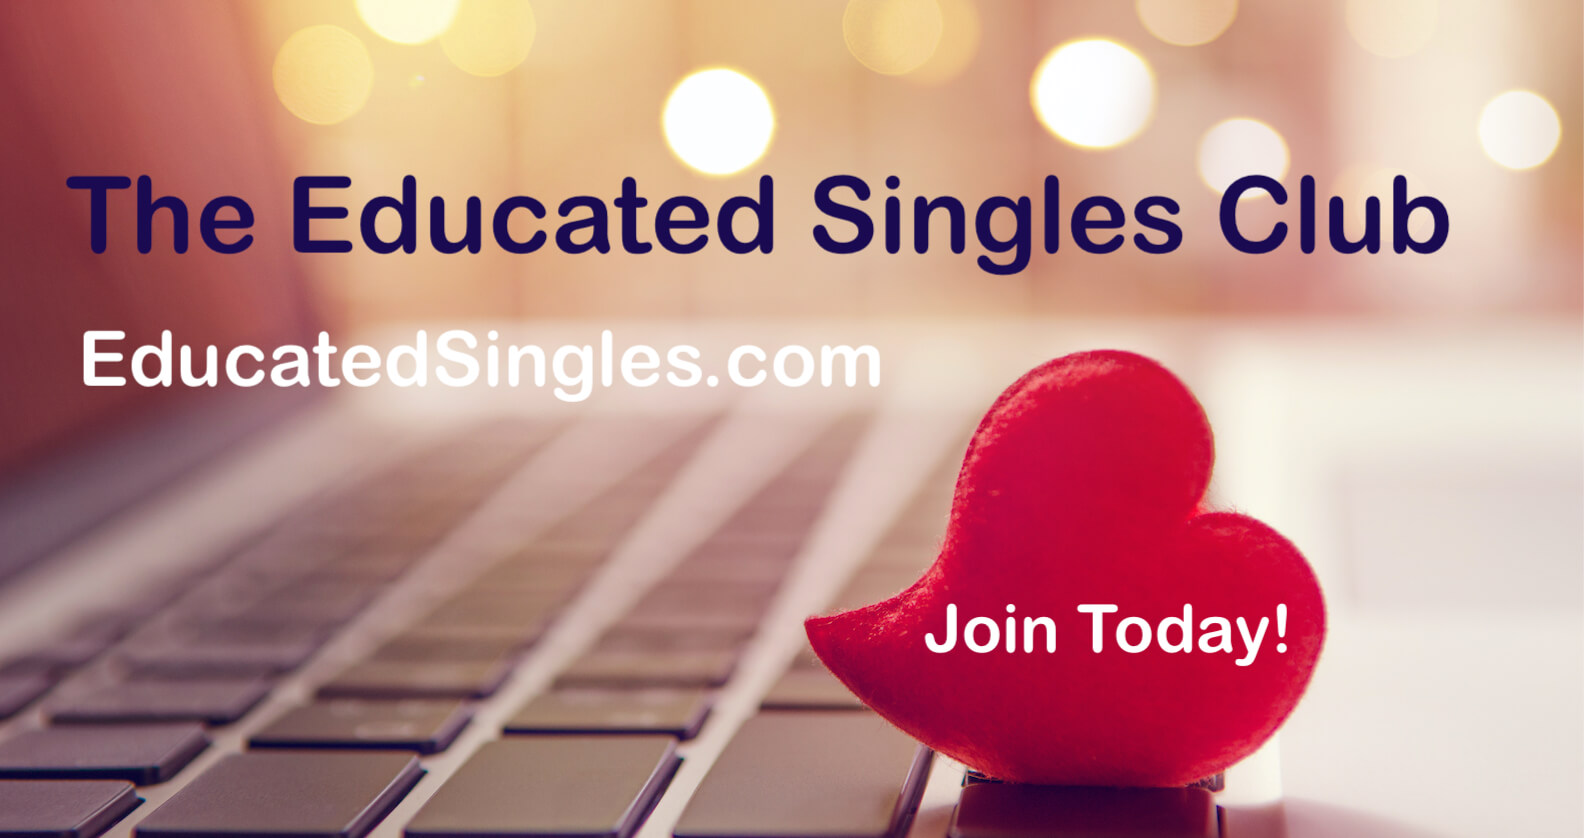 68% of the well-educated singles are struggling under covid19